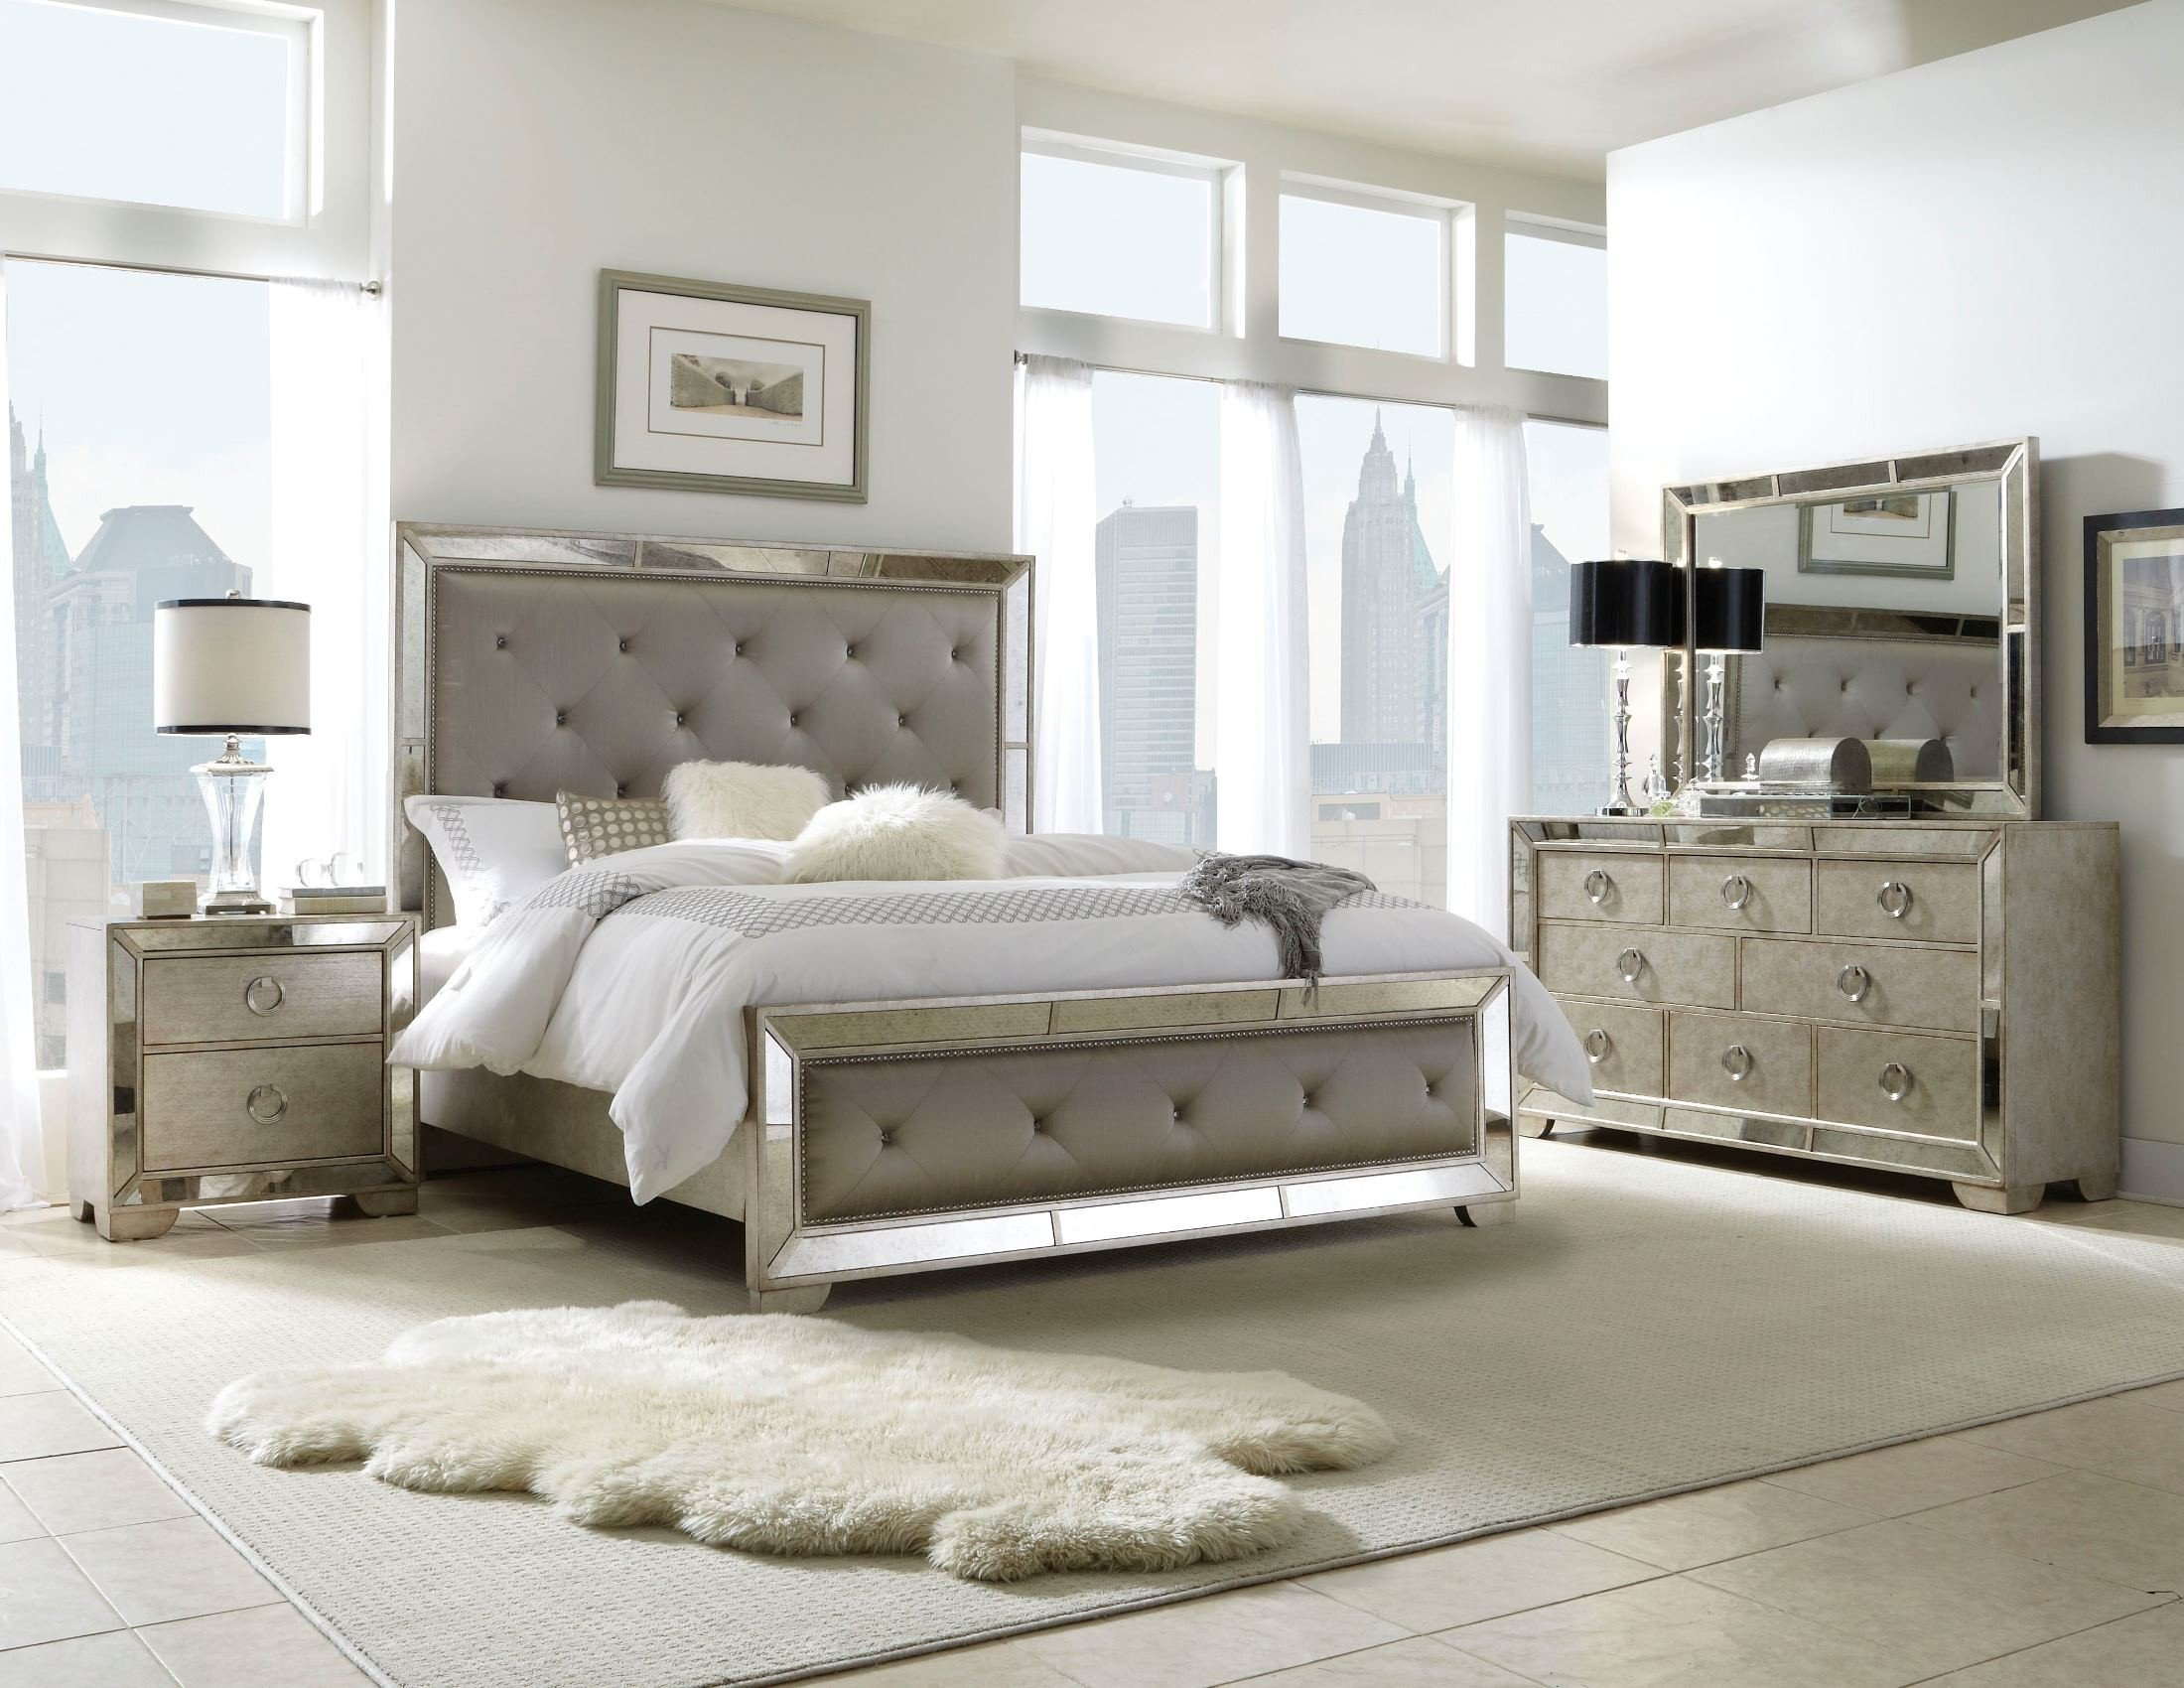 pulaski ailey platform bedroom set ailey collection 4 20155 | 395180 rp 1 11 2